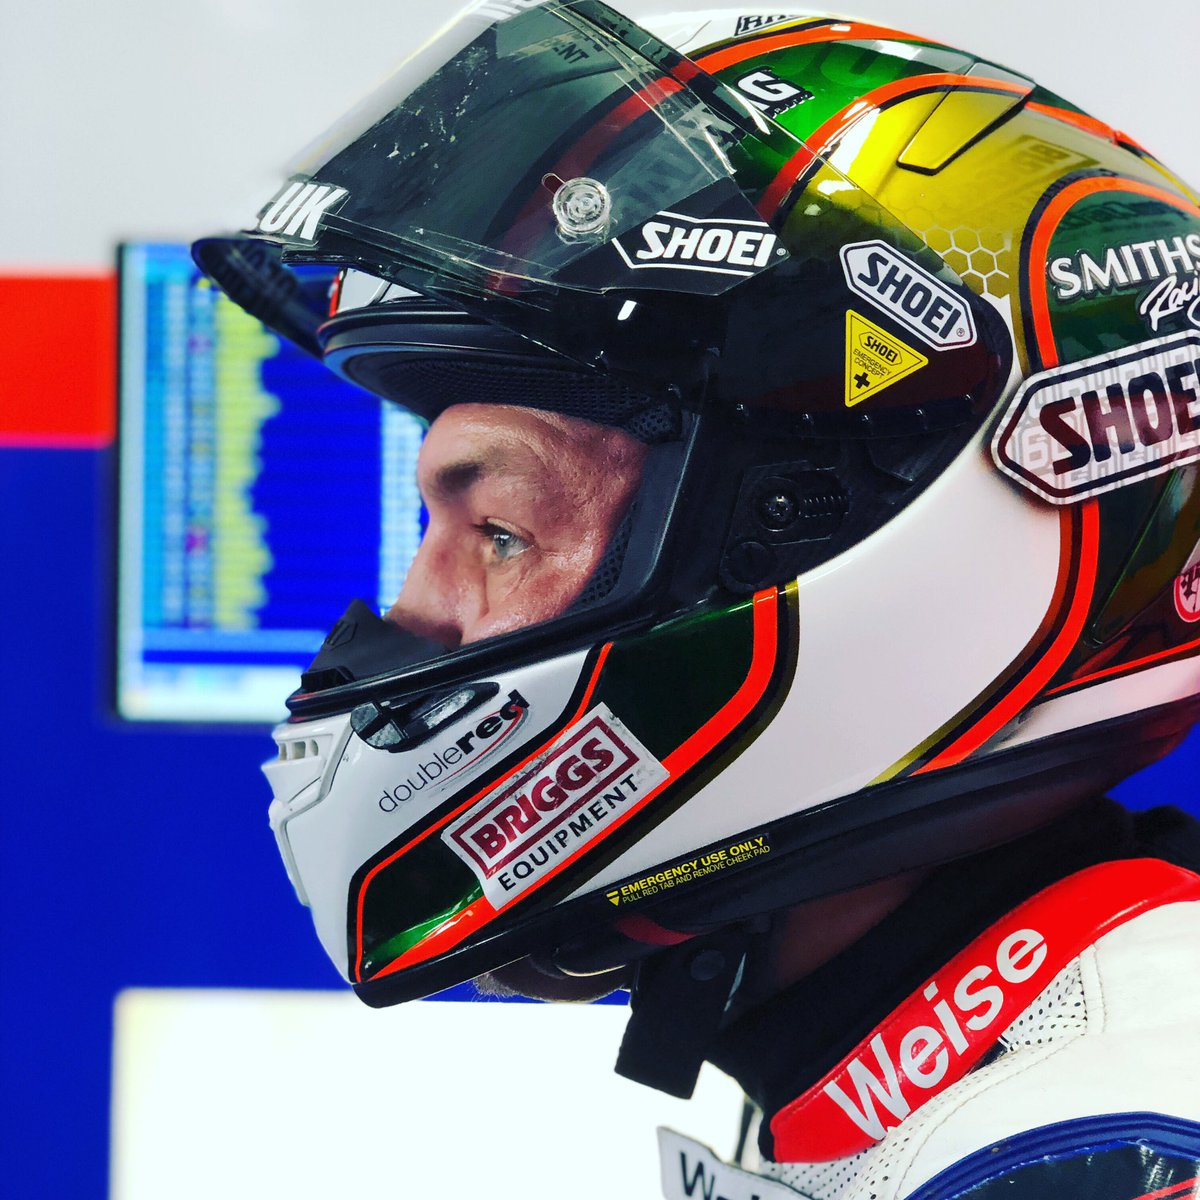 #FP2 going well for #Hicky60   Quick pit stop with @Smiths_Racing and straight back on track @OfficialBSB @SnettertonMSV